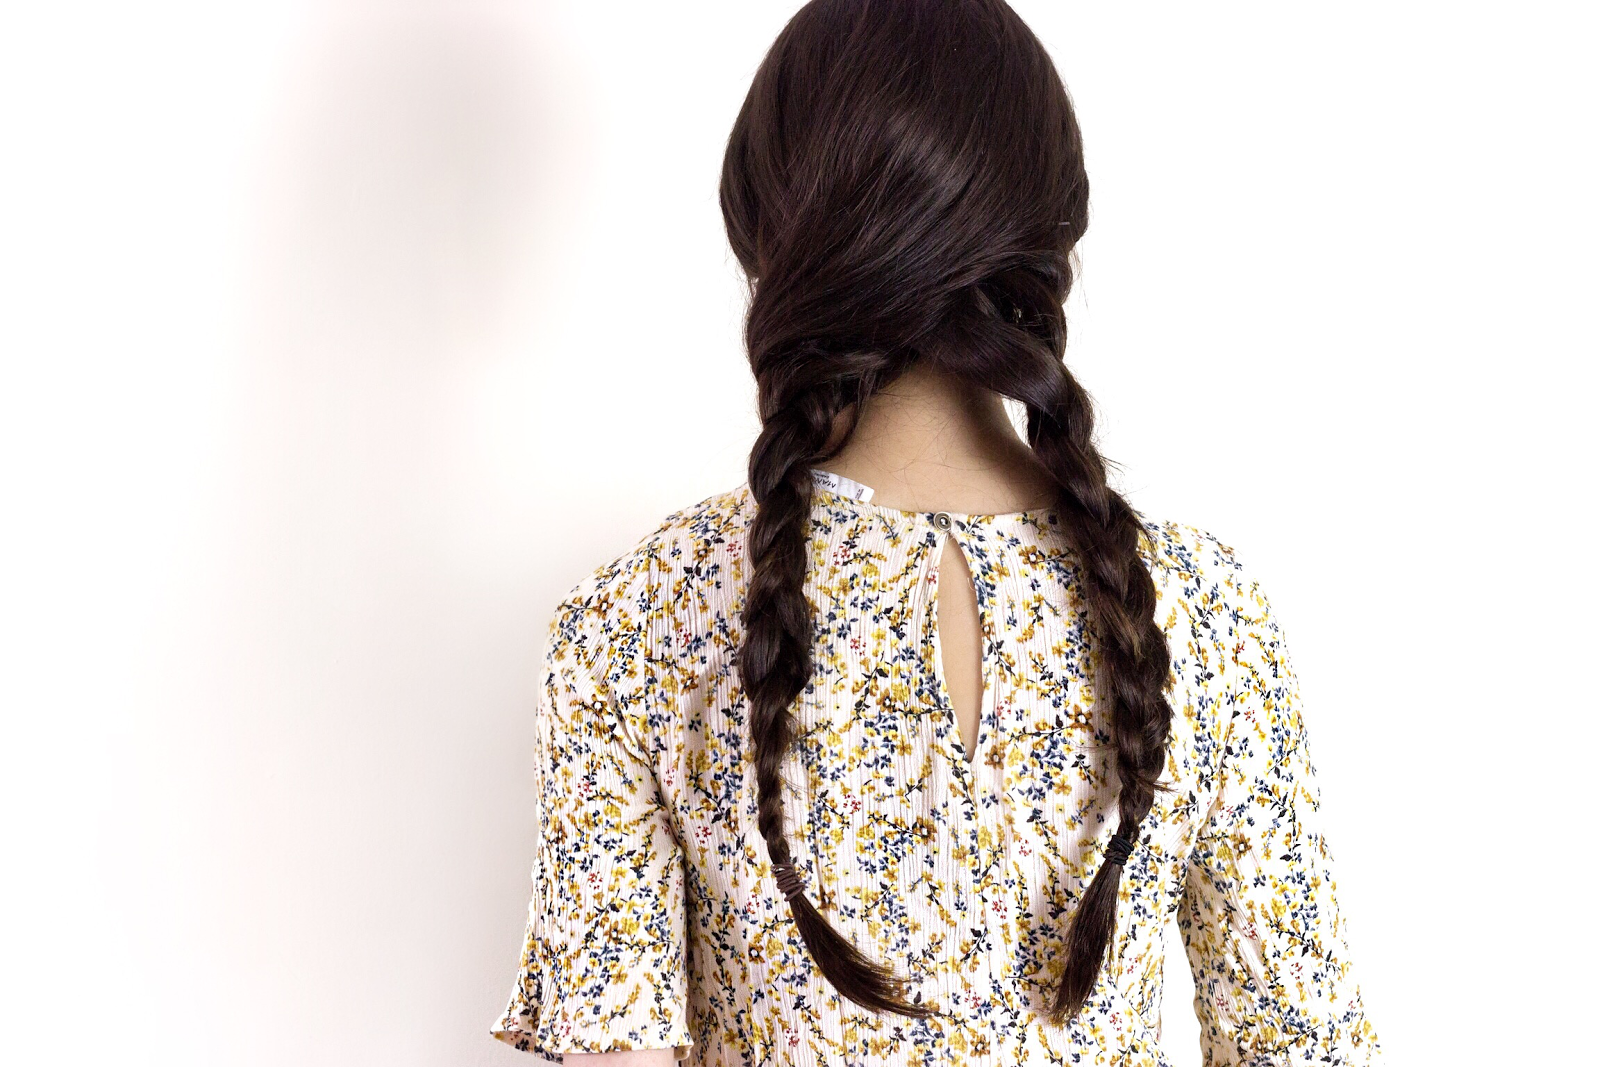 hair, hair tutorial, tutorial, boho, boho hair, bblogger, british blogger, fashion blogger, anasofiachic, beauty blogger, makeup blogger, lifestyle blogger, boho chic, effortless hair, braid, plait, glaimihair, hair extensions, spring,